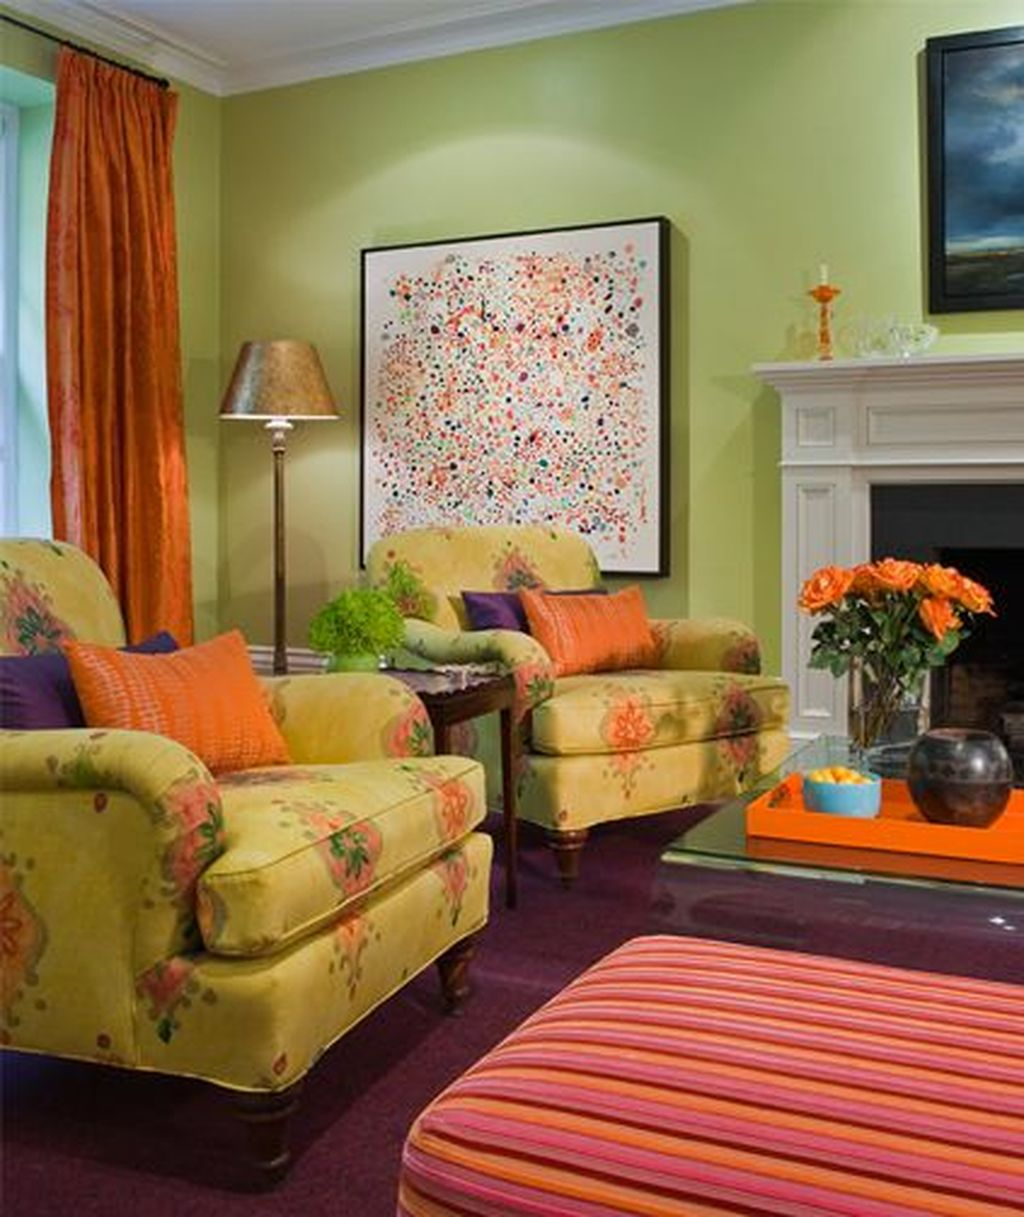 Inspiring Living Room Color Schemes Ideas Will Make Space Beautiful28